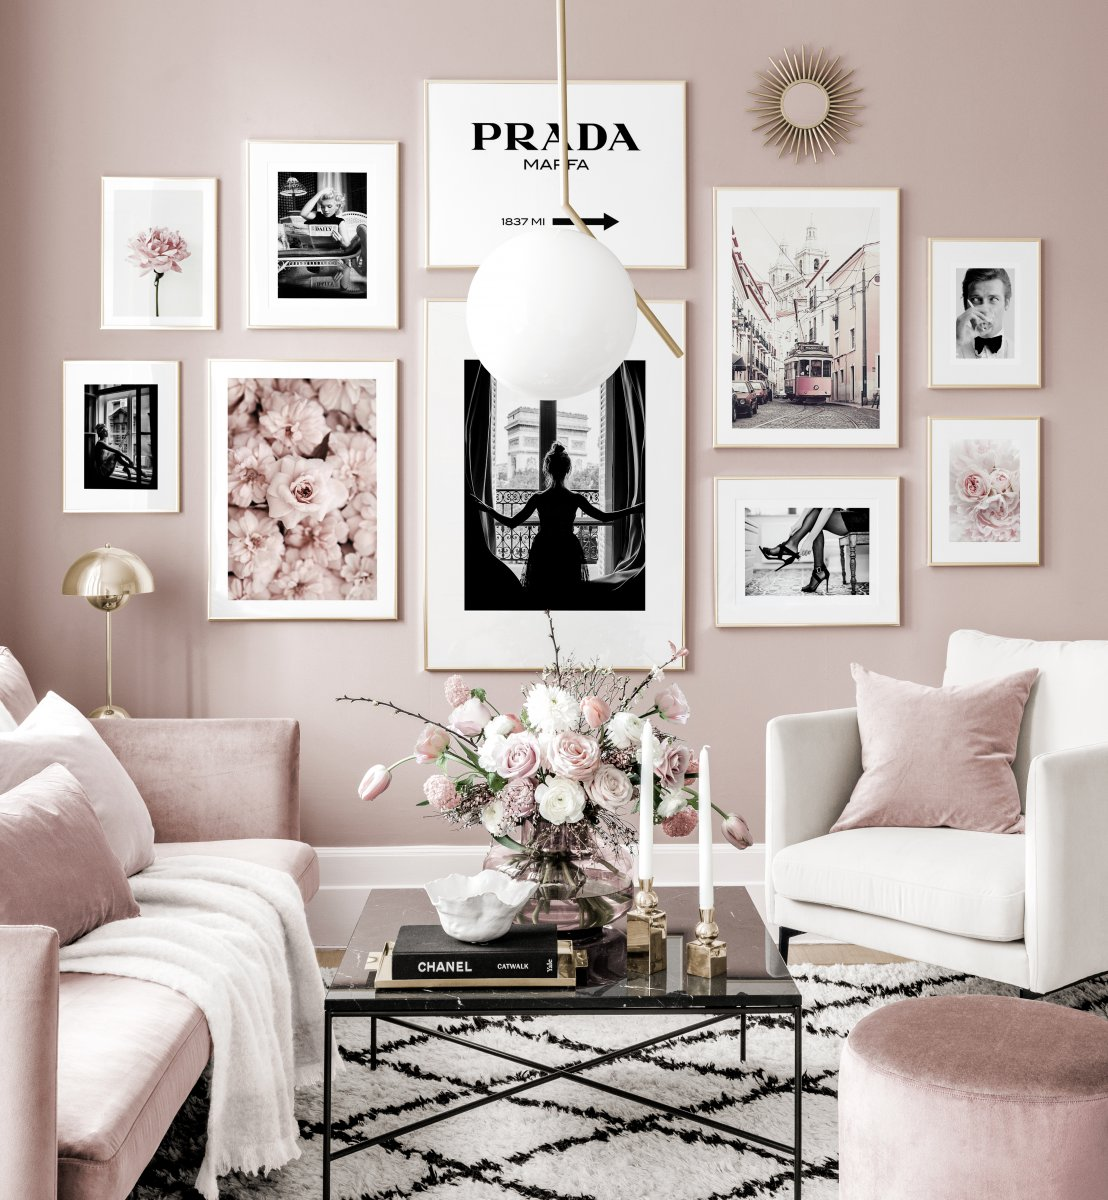 Black White posters flowers pink interior golden frames - Gallery wall  inspiration - Posterstore.ca